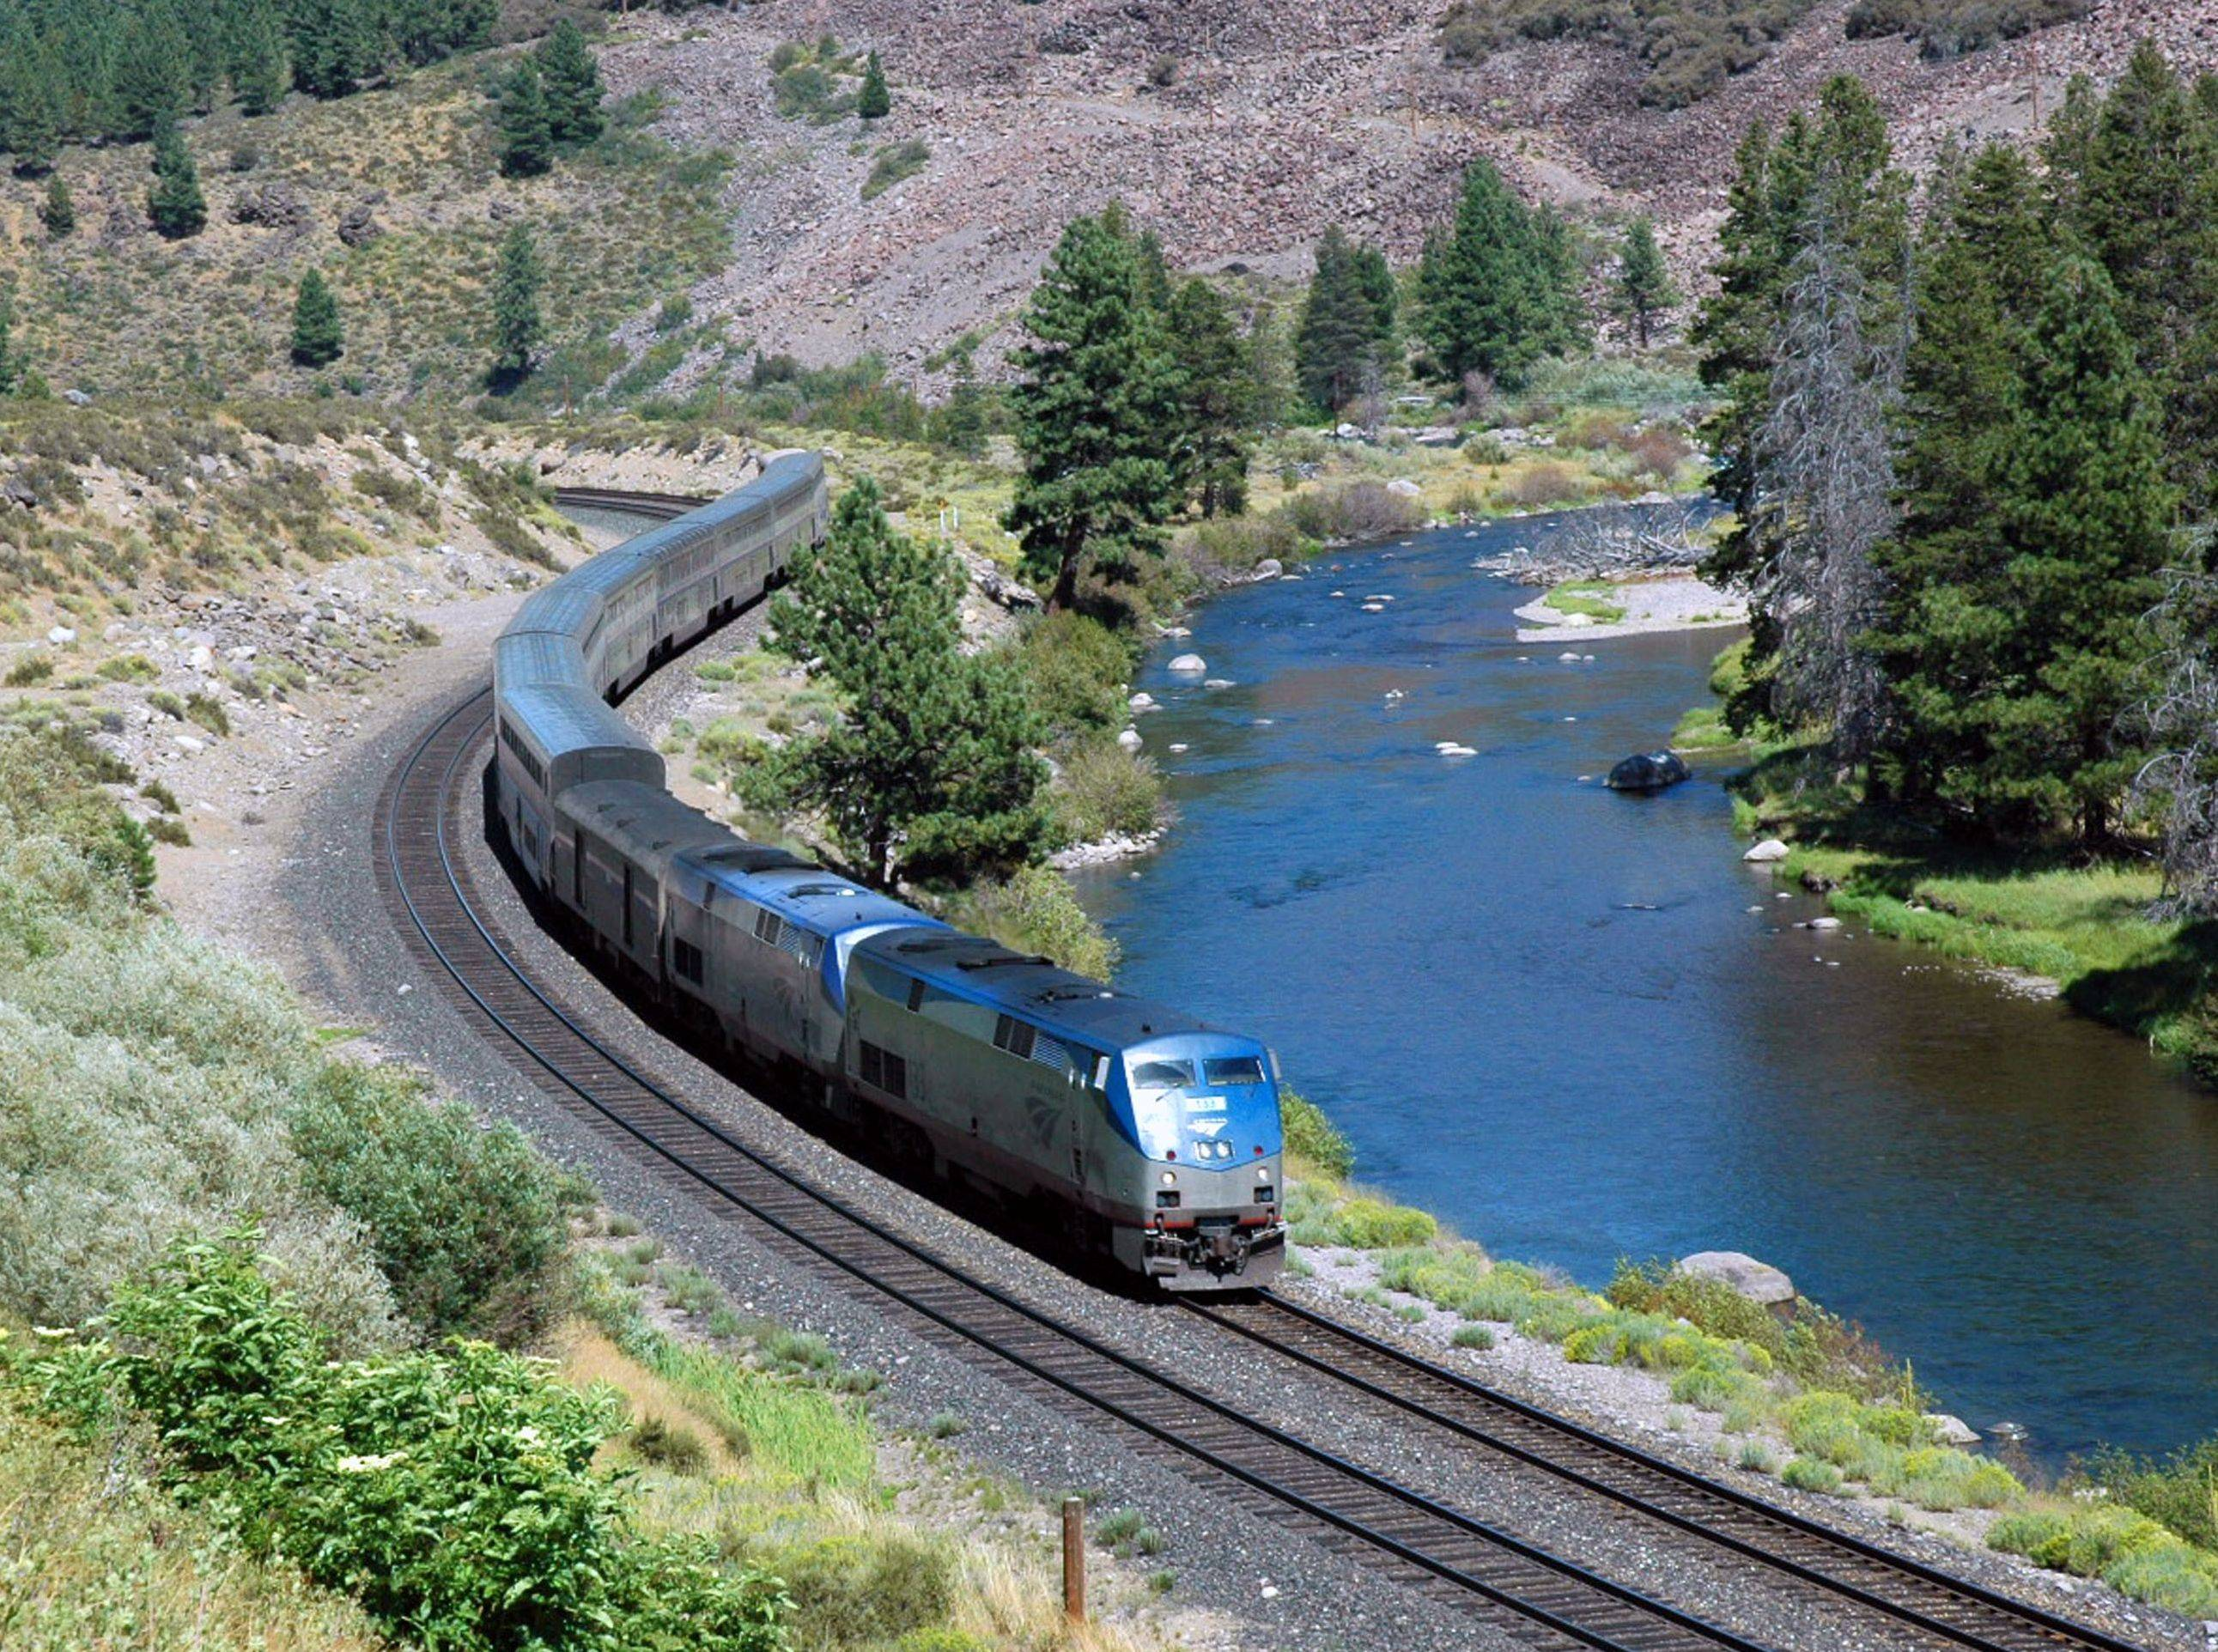 The California Zephyr train near Truckee, Calif. The Zephyr's ultimate destination is Chicago, a 51-hour trip.